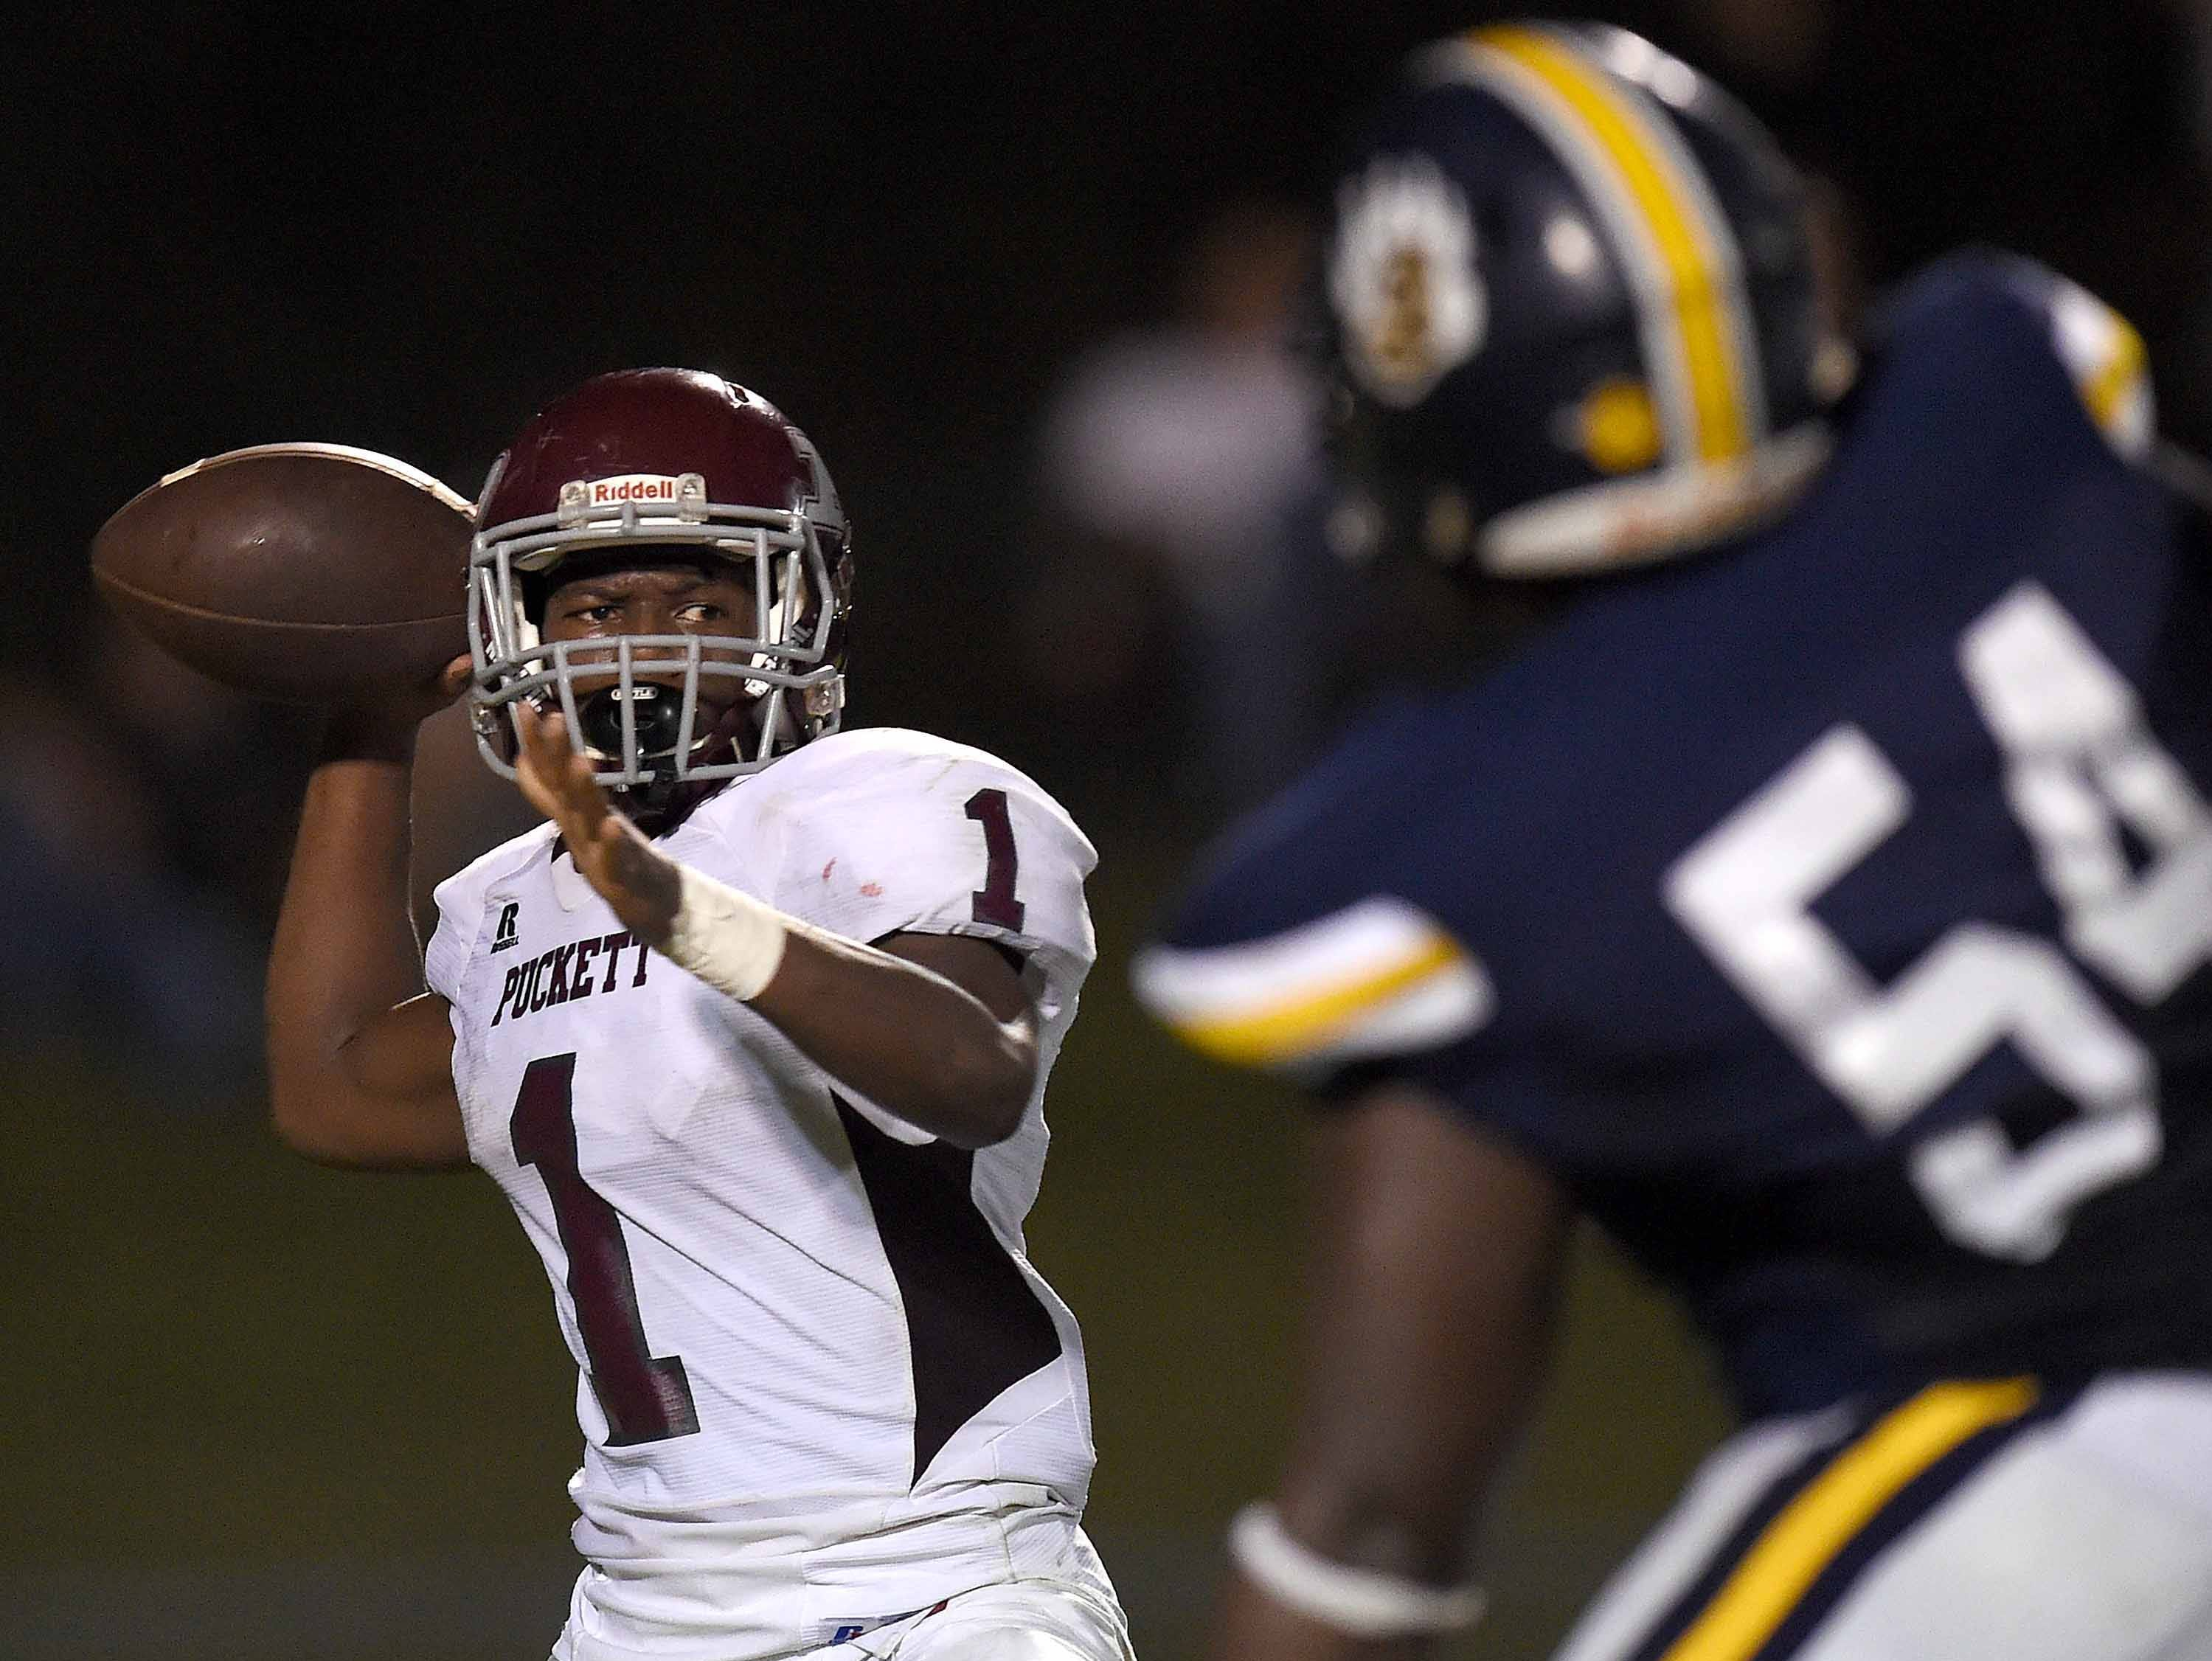 Puckett quarterback Ty'vez Tate (1) looks to throw over the pass rush by St. Joseph's Jaden Coleman (54) on Friday, October 19, 2018, at St. Joseph Catholic School in Madison, Miss.